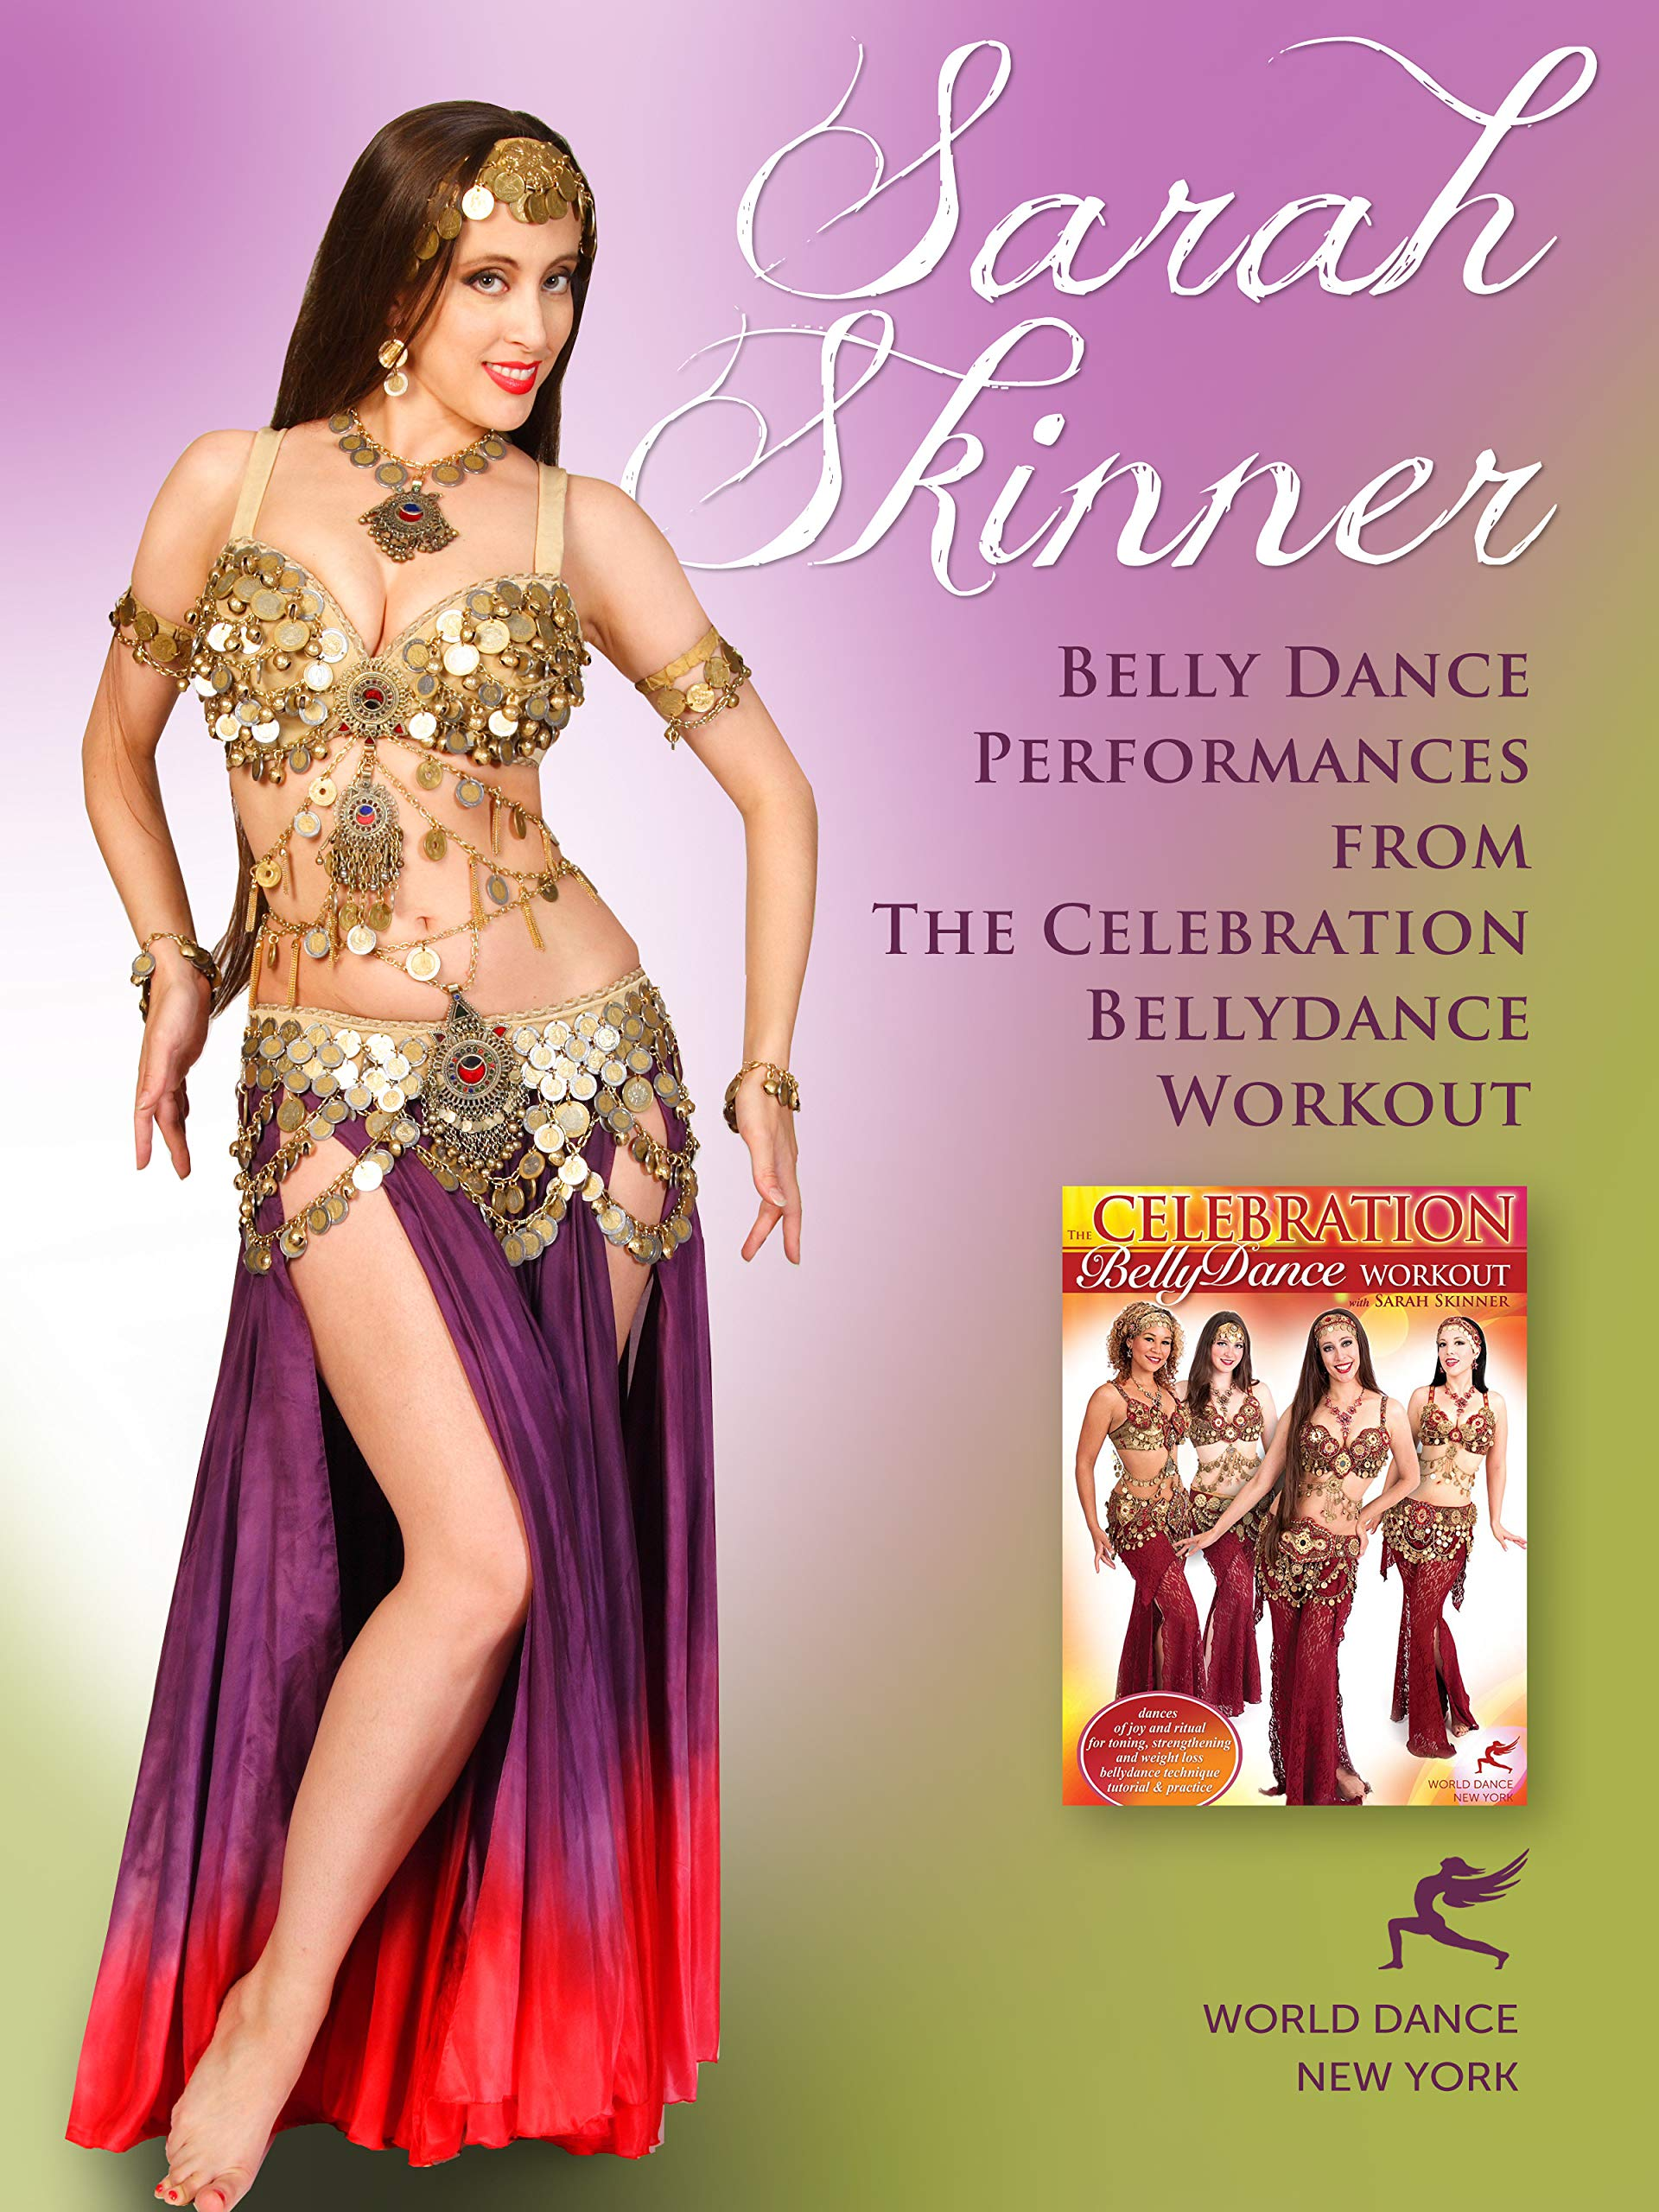 Sarah Skinner - Belly Dance Performances from the Celebration Belly Dance Workout